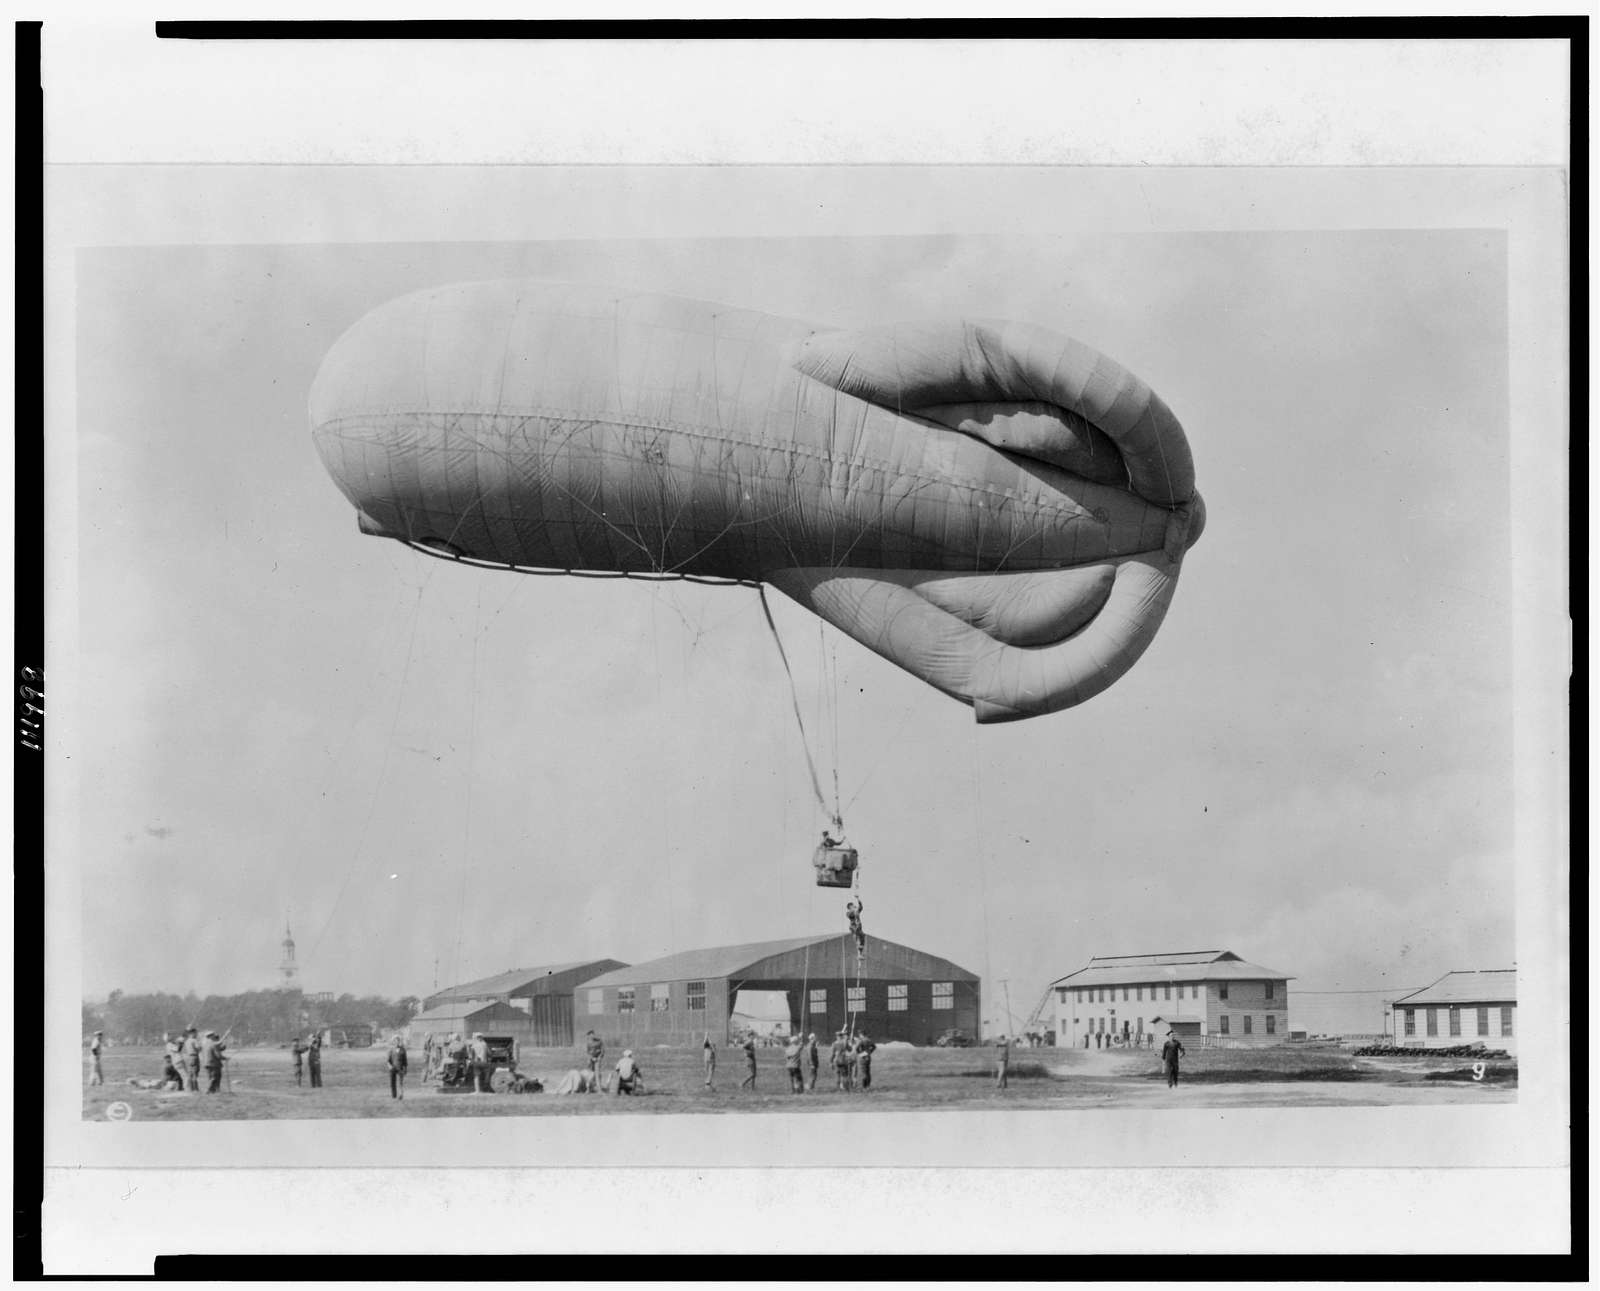 """[""""Pilot"""" climbing up rope to get into basket (gondola) suspended below observation kite balloon during training at the U.S. Naval Air Station, Hampton Roads, Virginia]"""